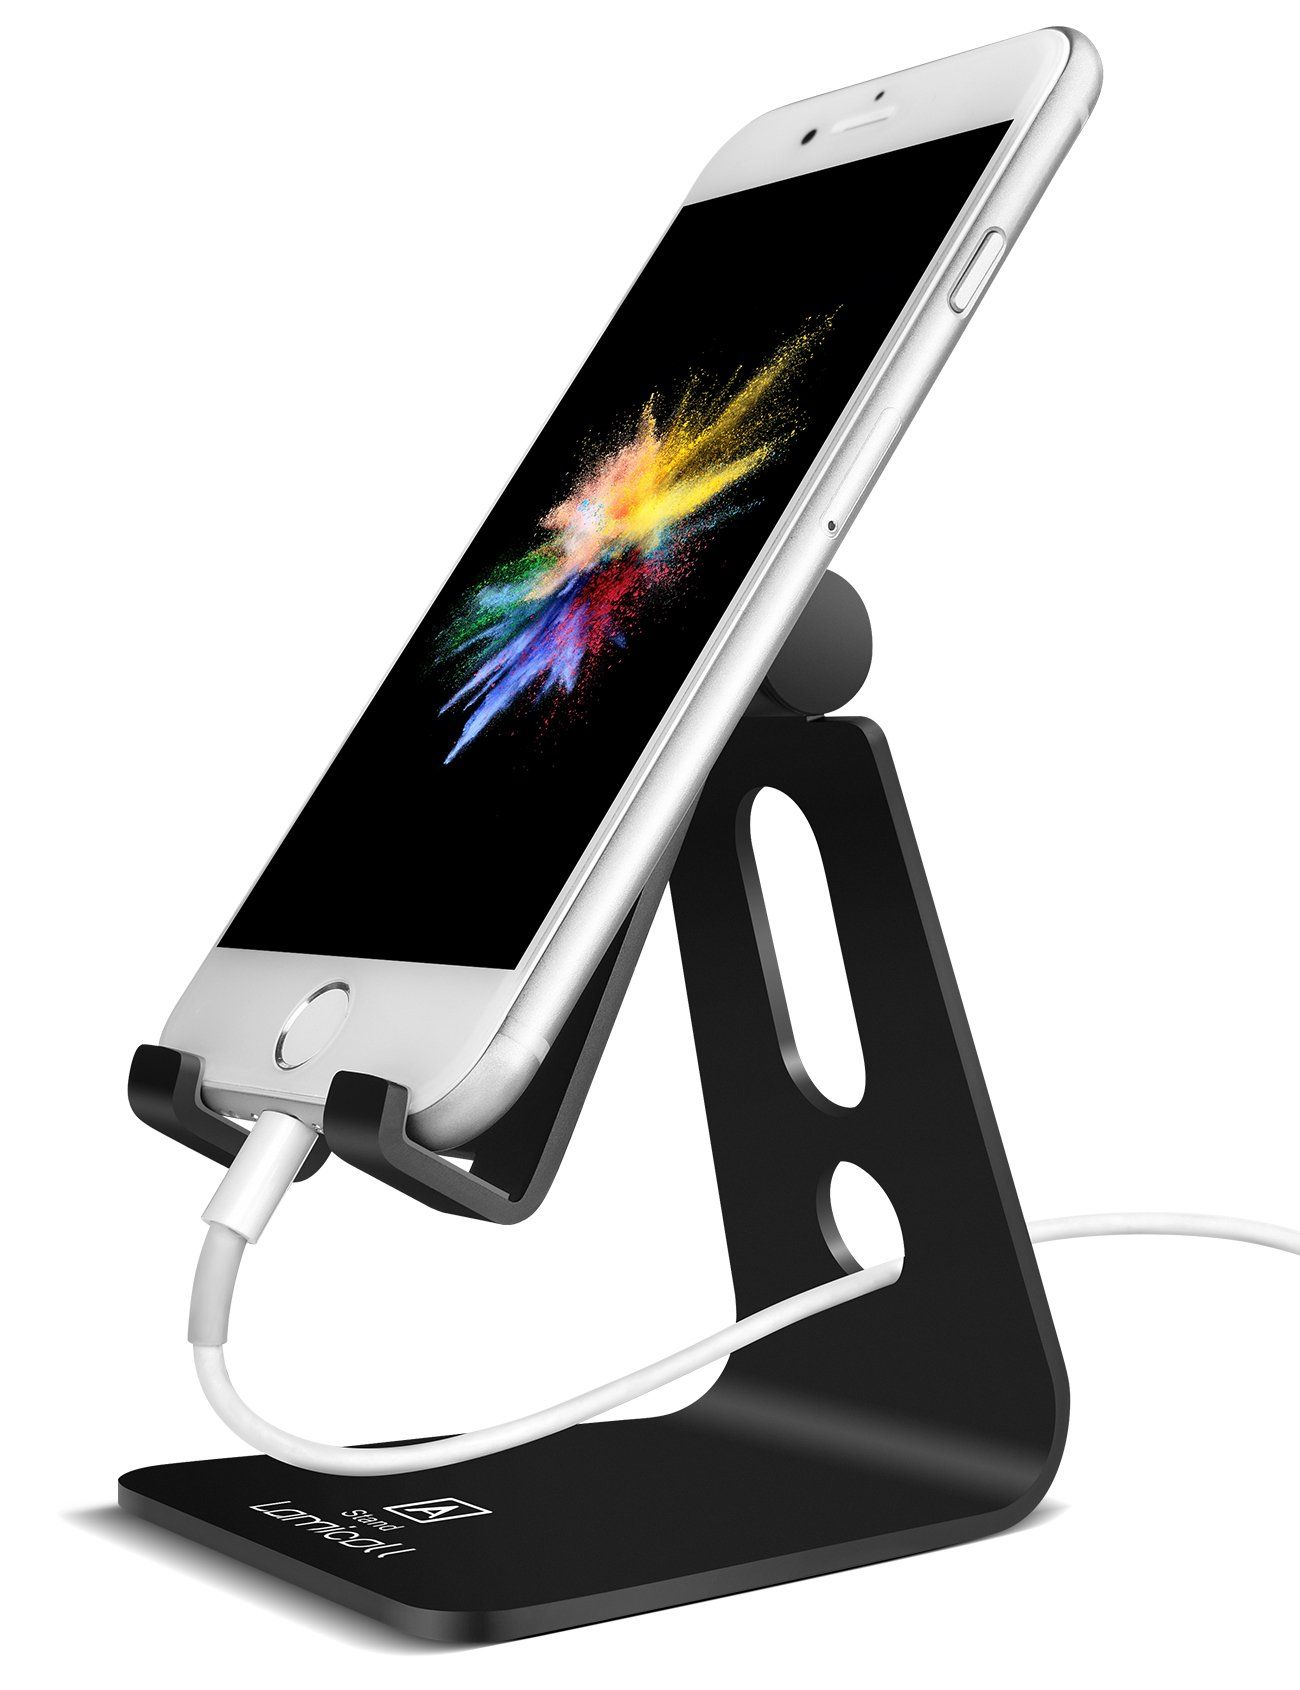 Adjustable Cell Phone Stand Lamicall Iphone Stand Update Version Cradle Dock Holder For Iphone 7 6 Adjustable Phone Stand Cell Phone Stand Iphone Stand